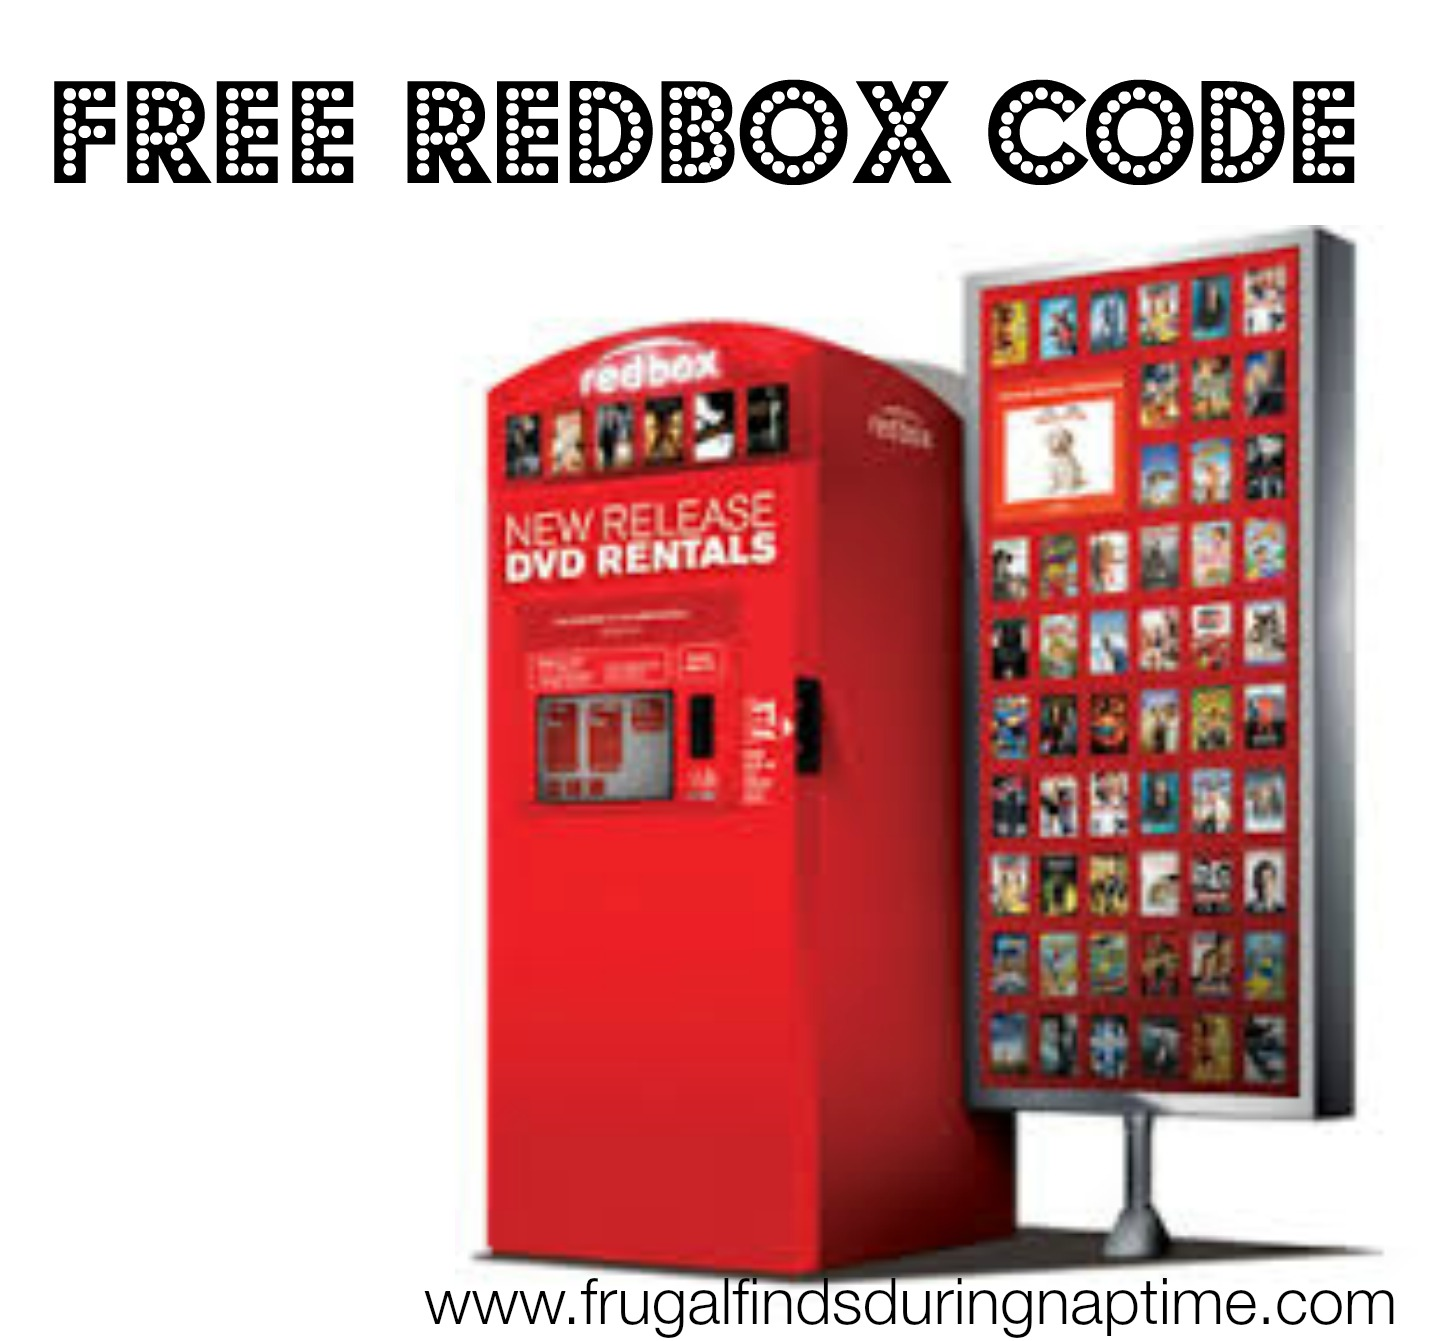 ... code X26G279Q for a FREE 1-day DVD rental. You can use this code